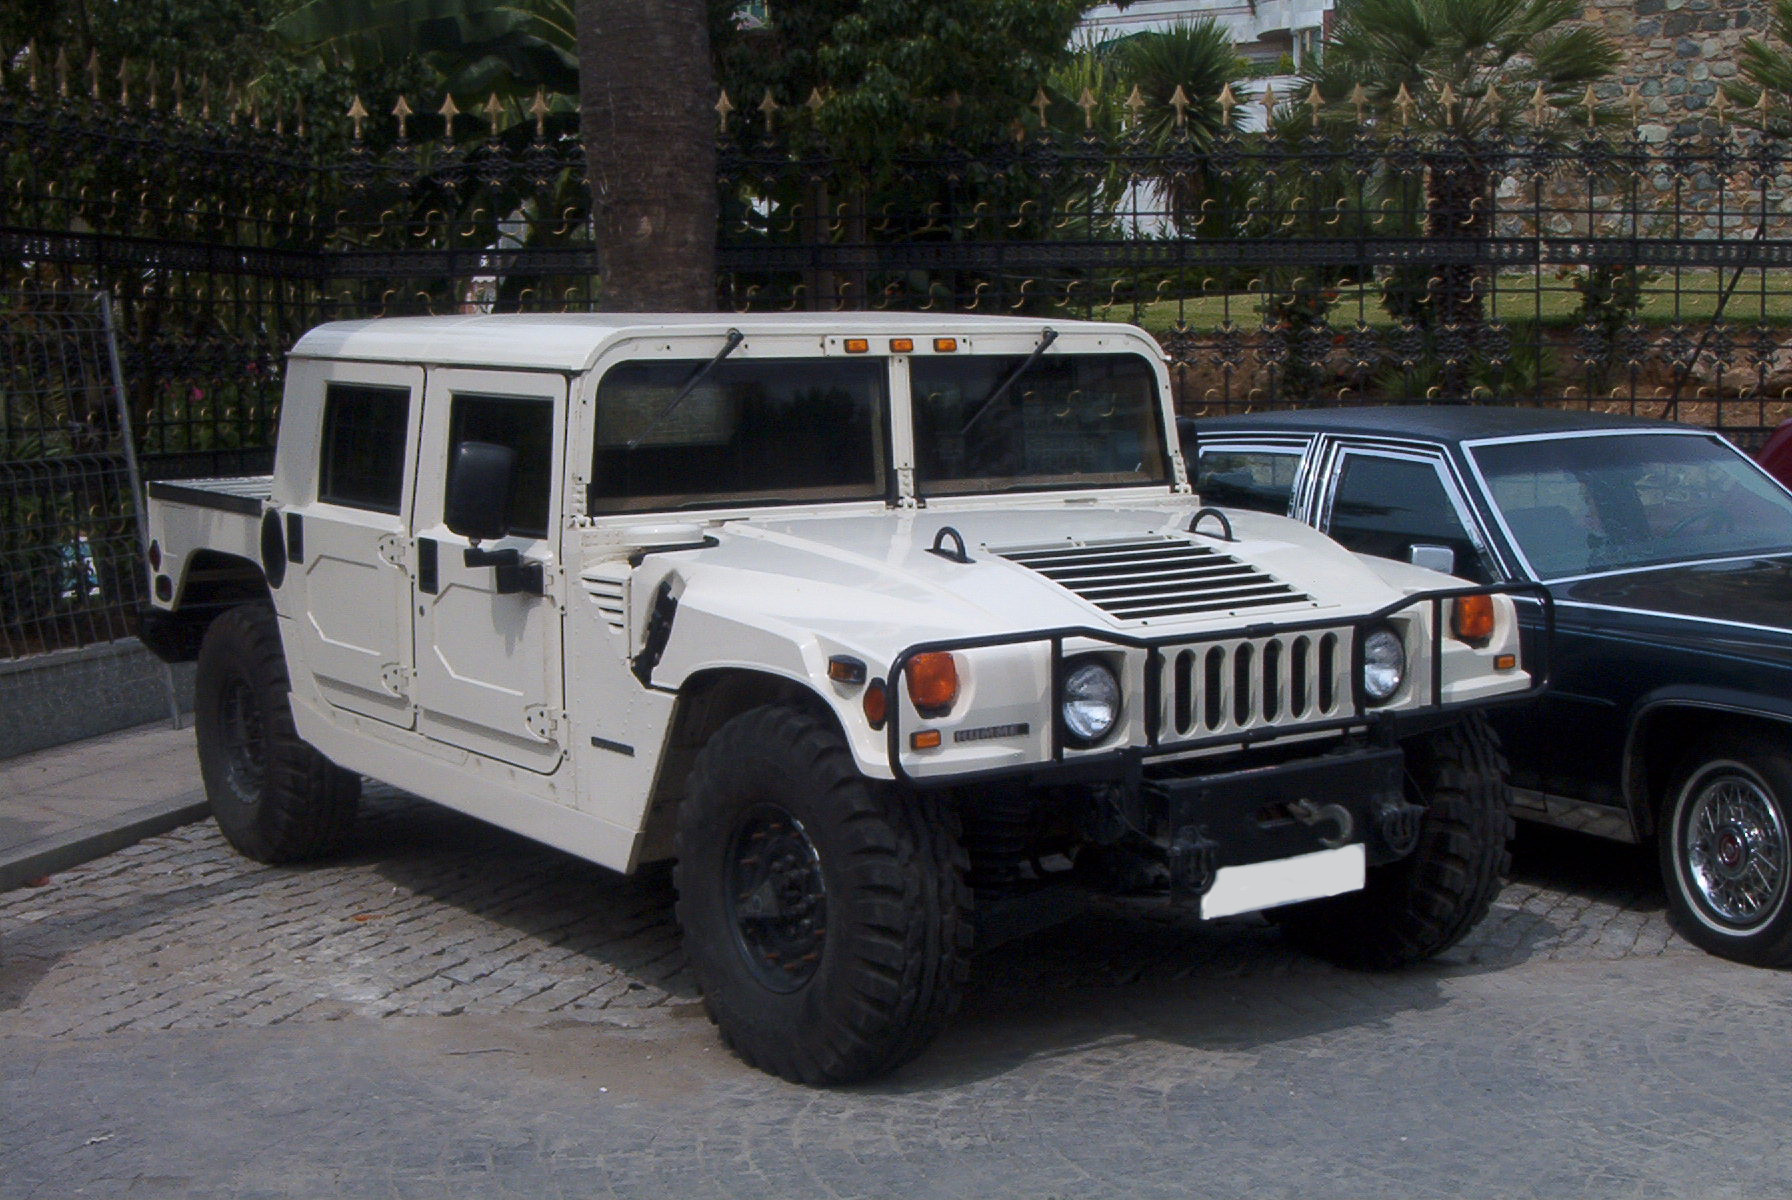 Hummer H1 Pick Up For Sale free download image